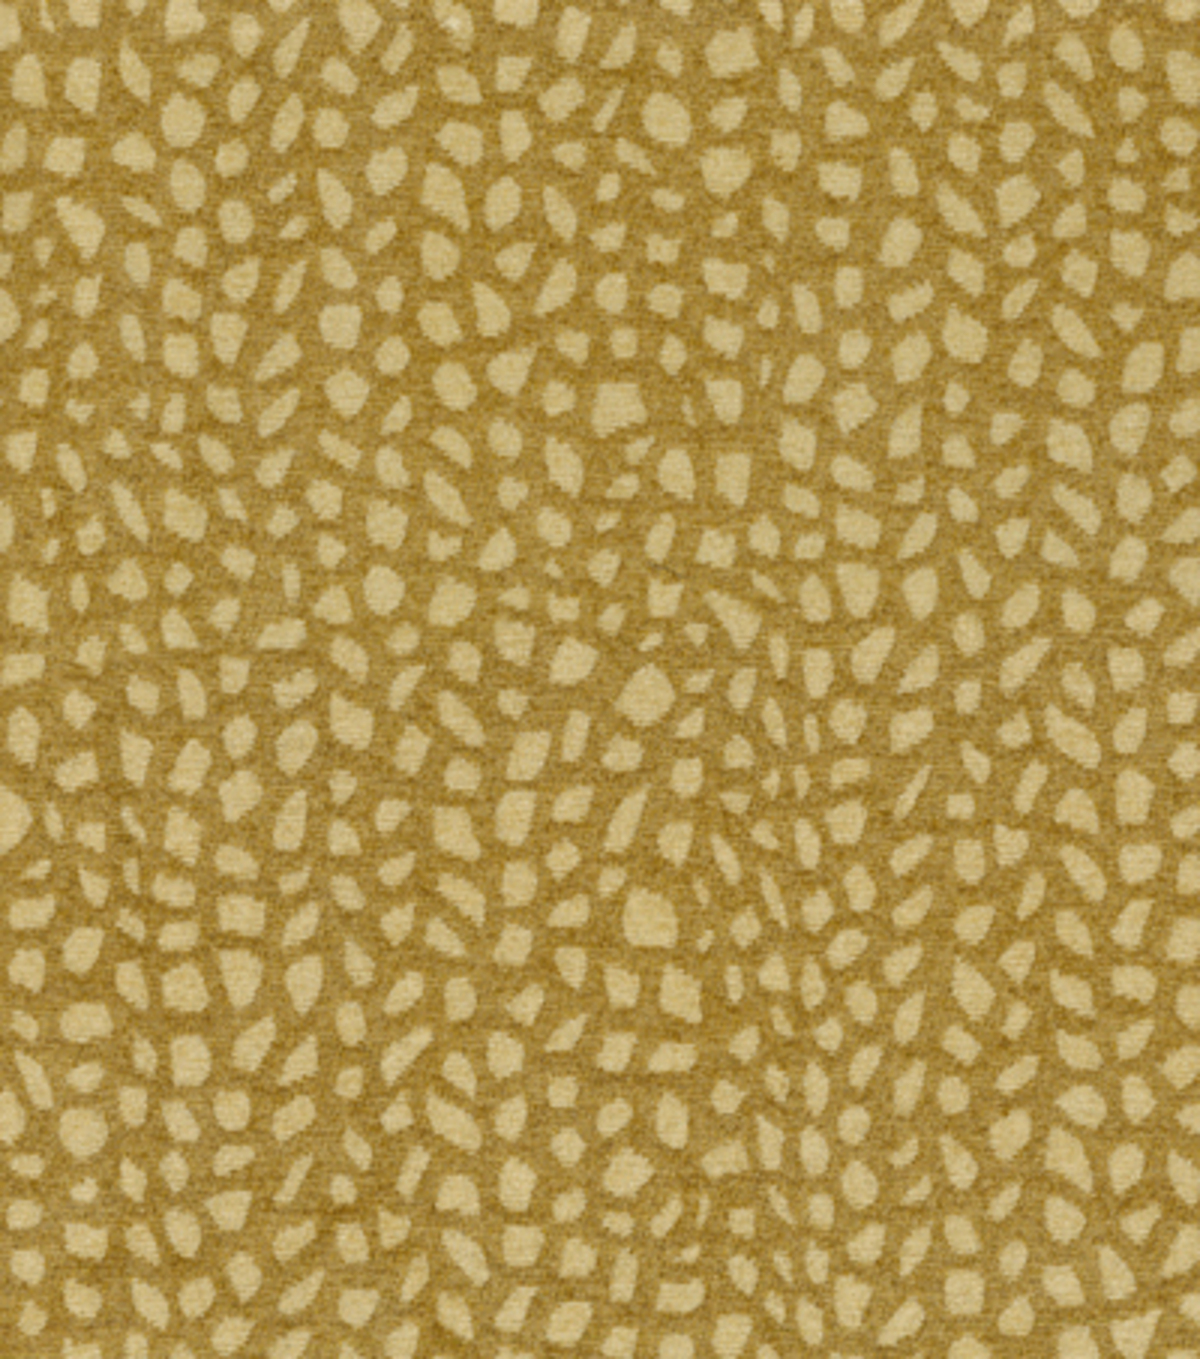 Home Decor 8\u0022x8\u0022 Fabric Swatch-Upholstery Fabric-Waverly Padua/Sienna